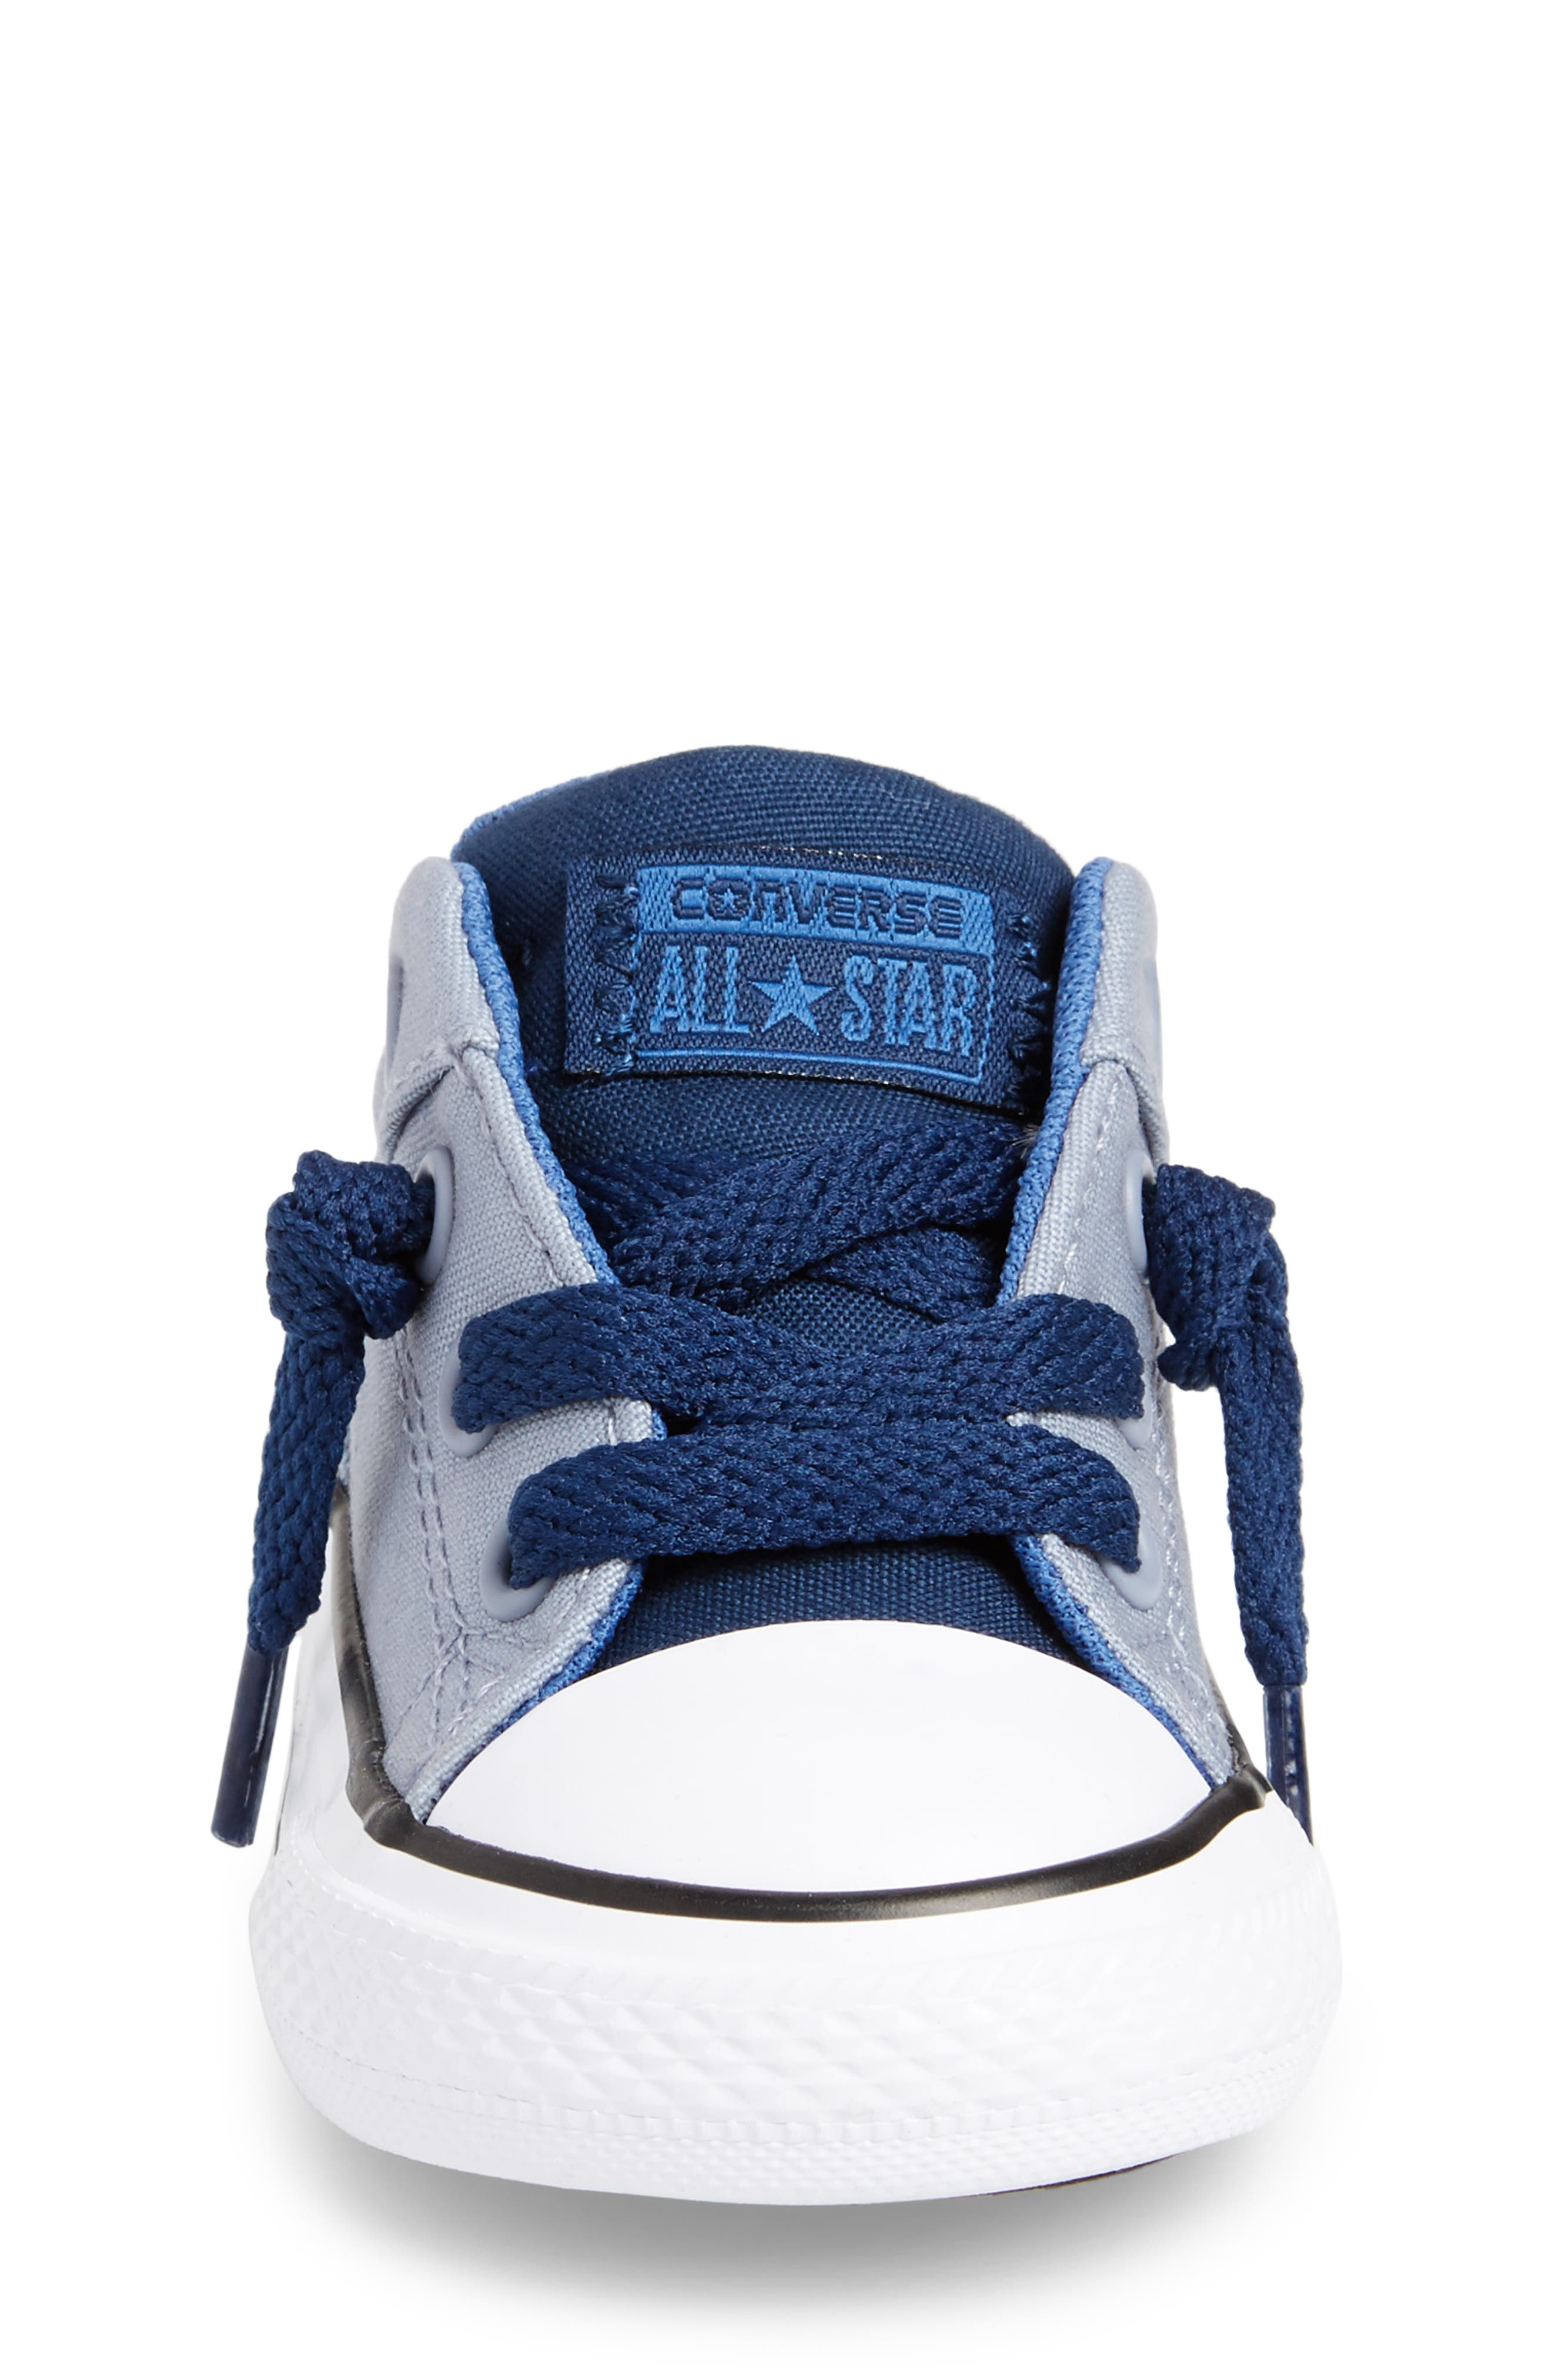 Chuck Taylor<sup>®</sup> All Star<sup>®</sup> High Street Slip-On Sneaker,                             Alternate thumbnail 4, color,                             022